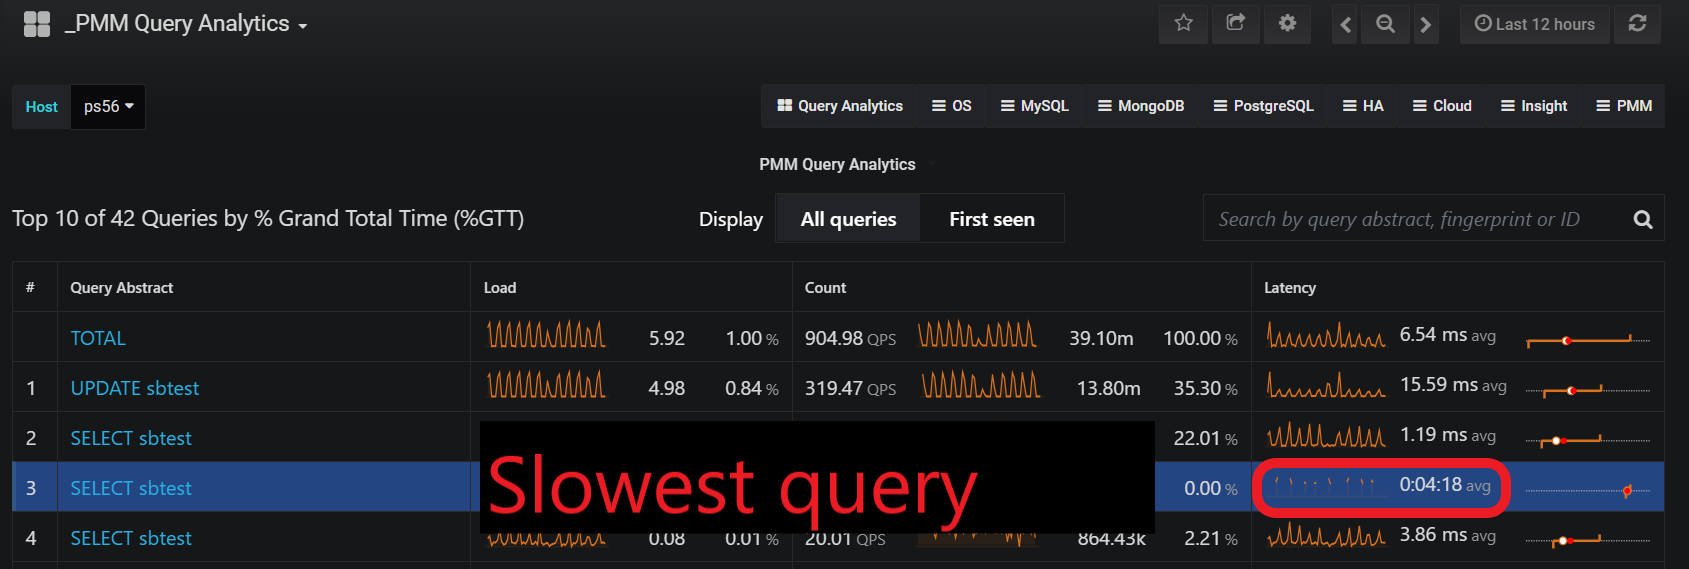 Slow query log from PMM dashboard